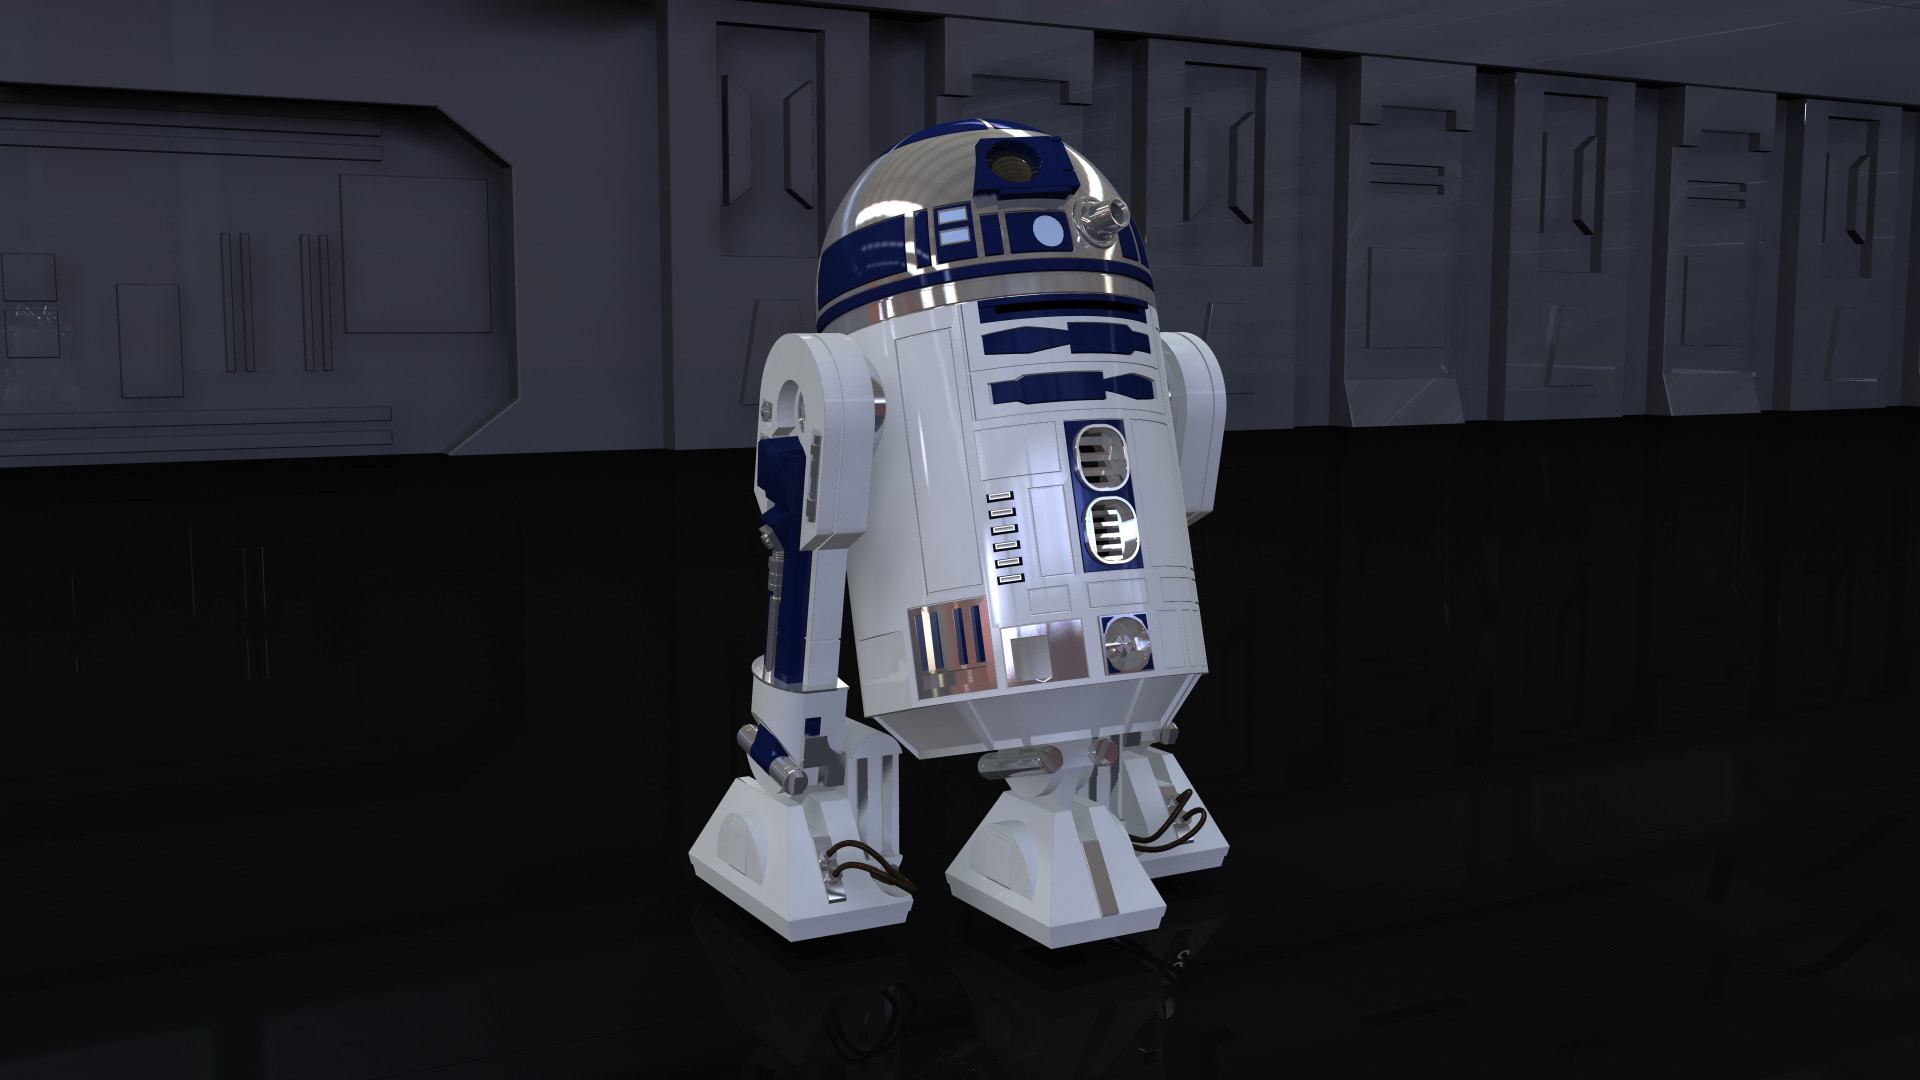 1920x1080 R2D2 Wallpaper HD